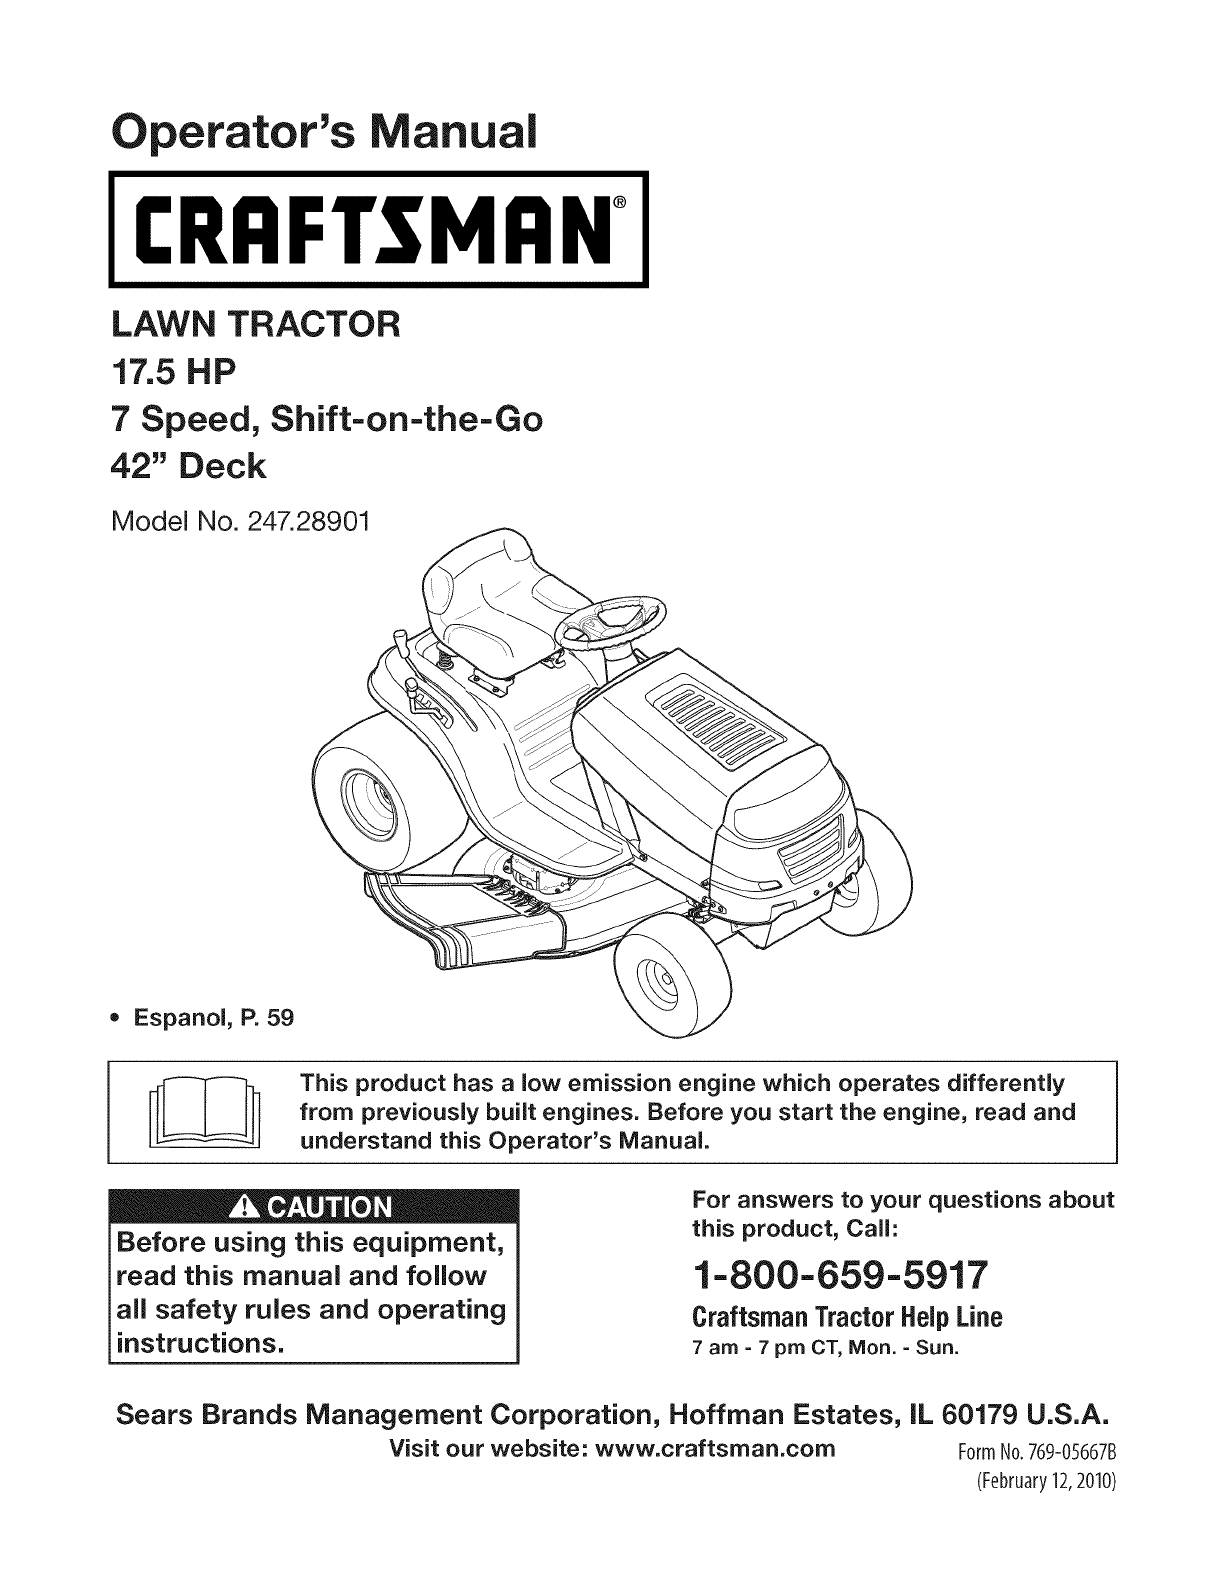 craftsman fs5500 belt diagram craftsman lawn mower deck